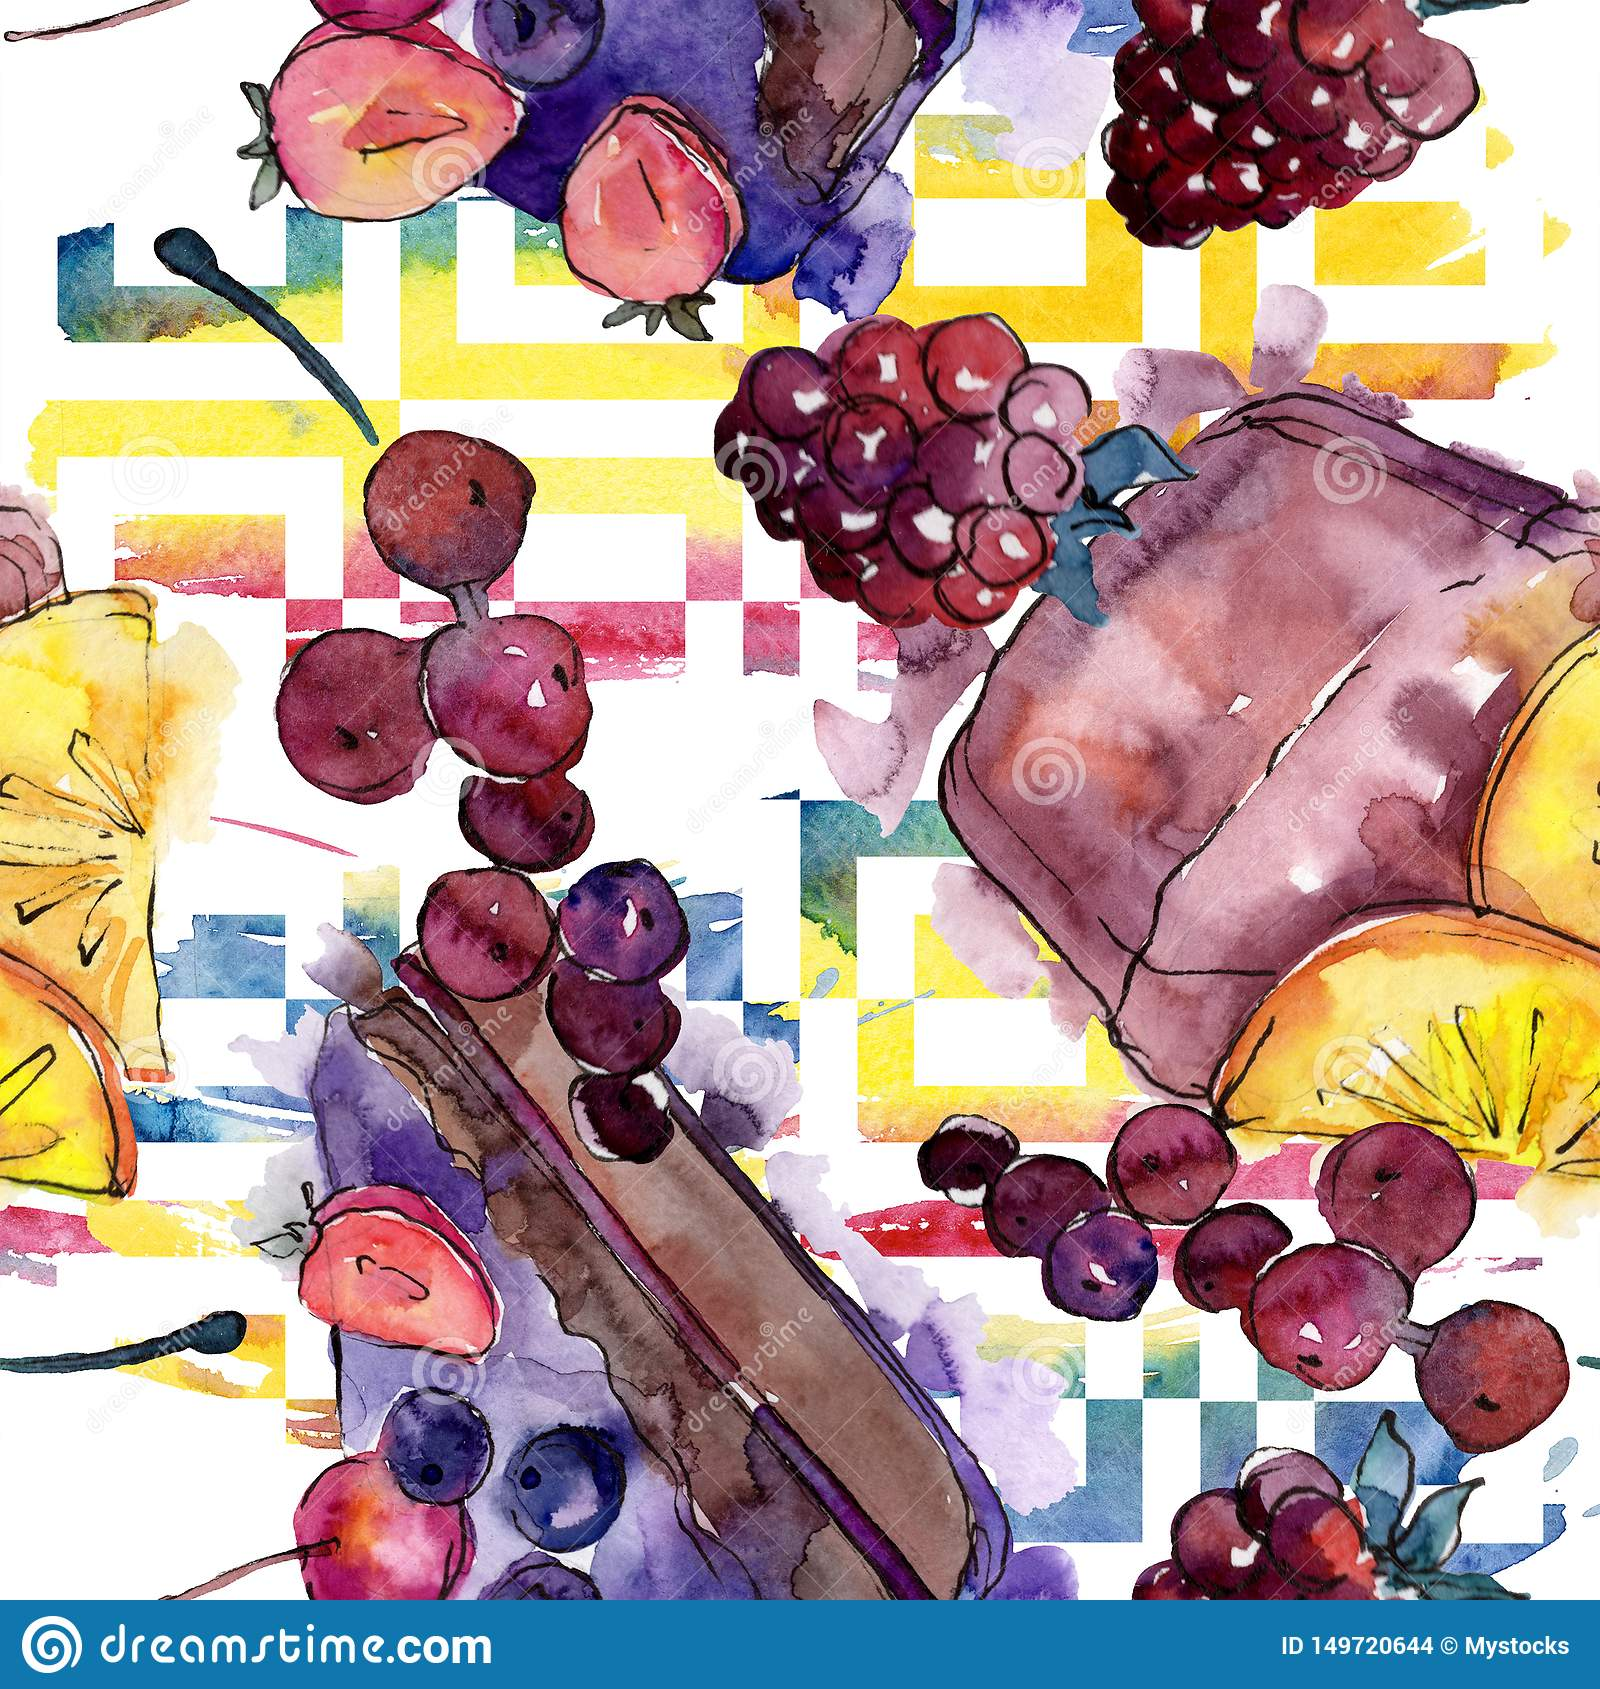 Tasty cake in a watercolor style. Watercolour illustration set. Seamless background pattern.